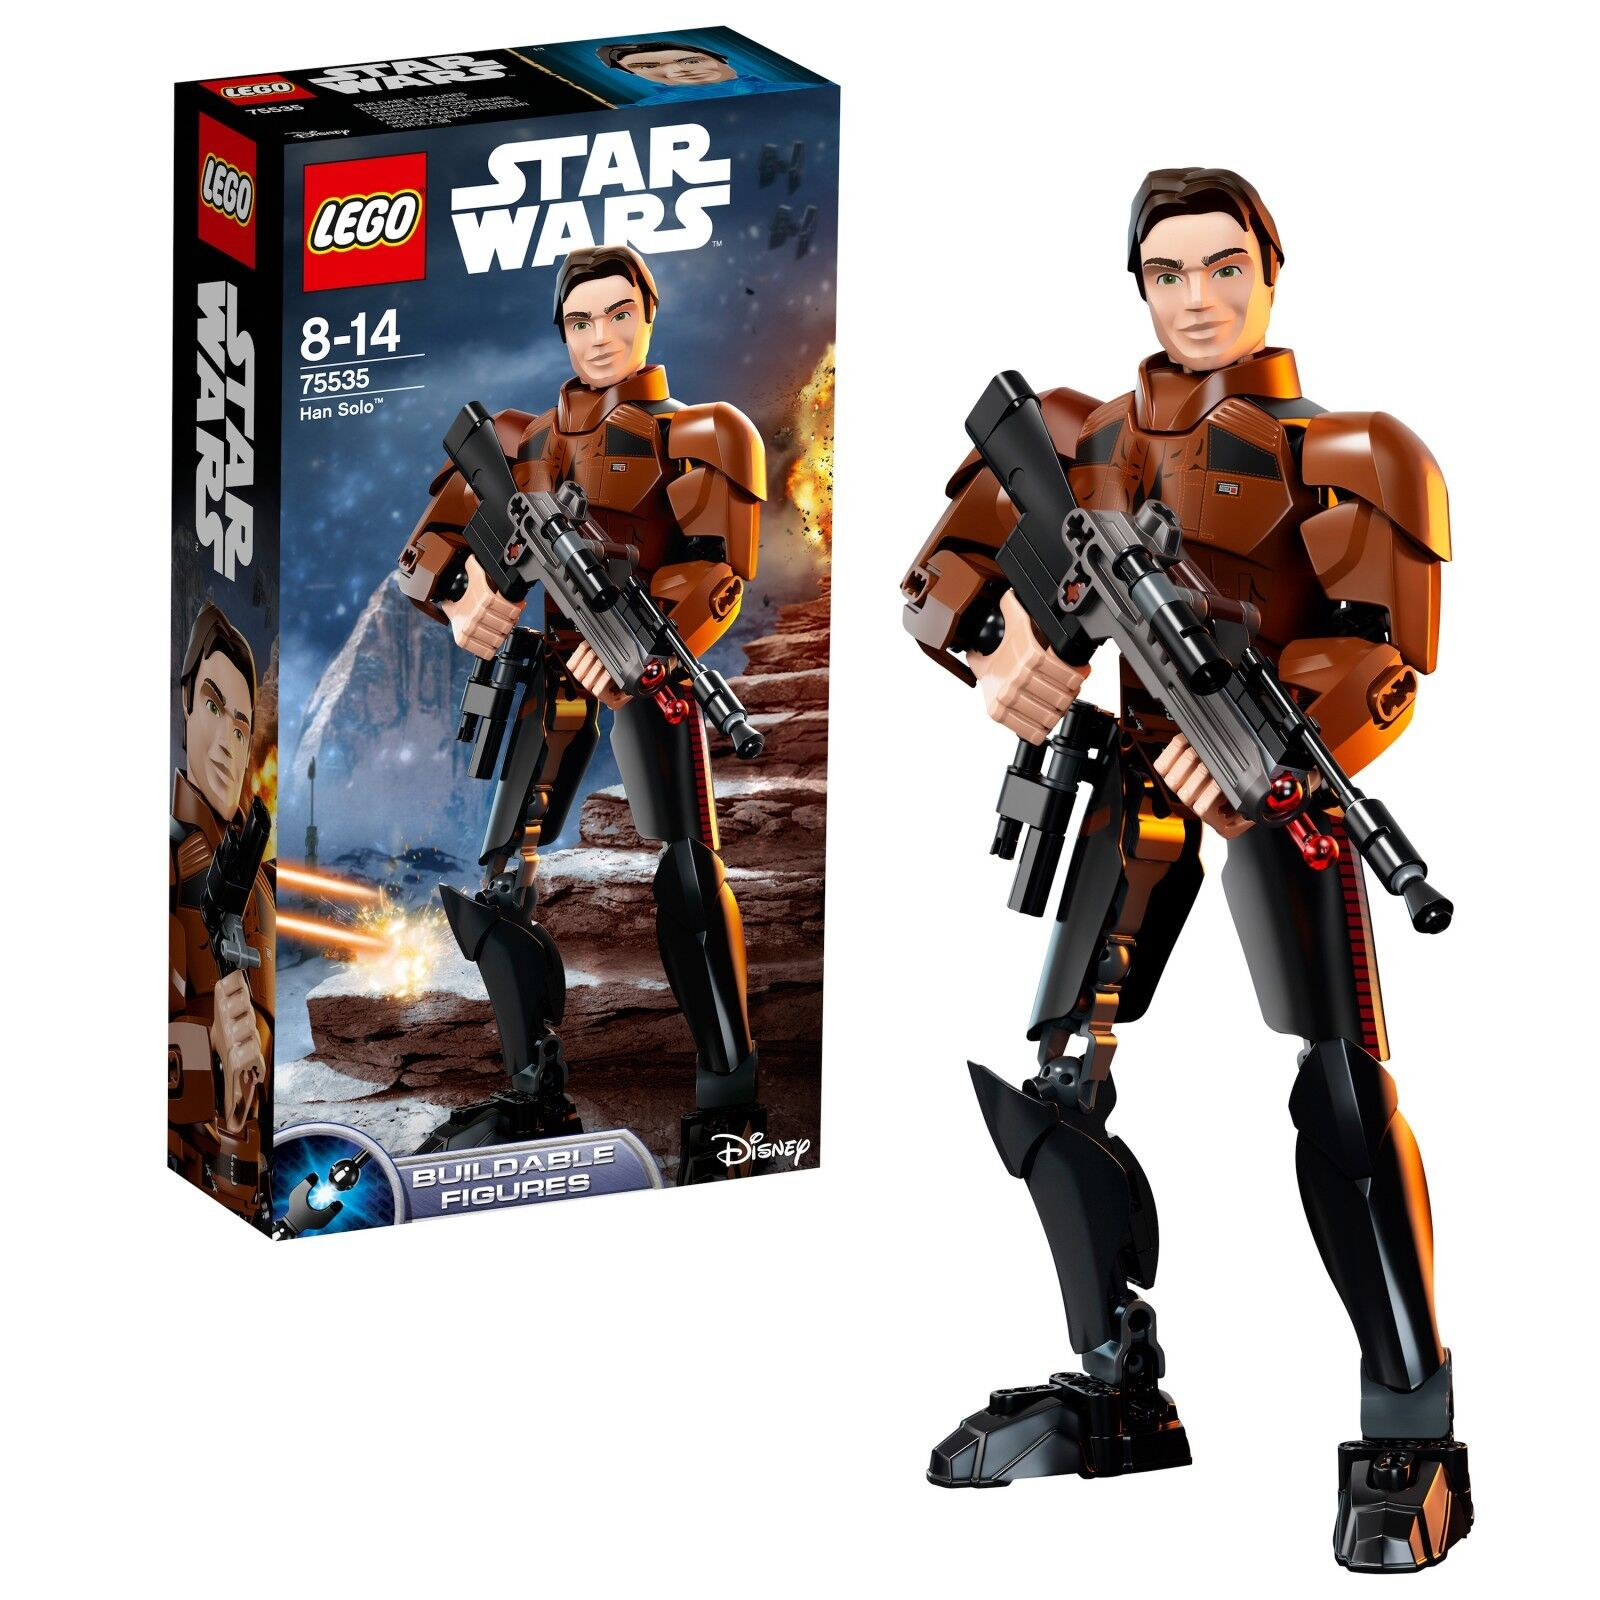 LEGO ® Star Wars ™ 75535 han solo ™ NUOVO OVP NEW MISB NRFB